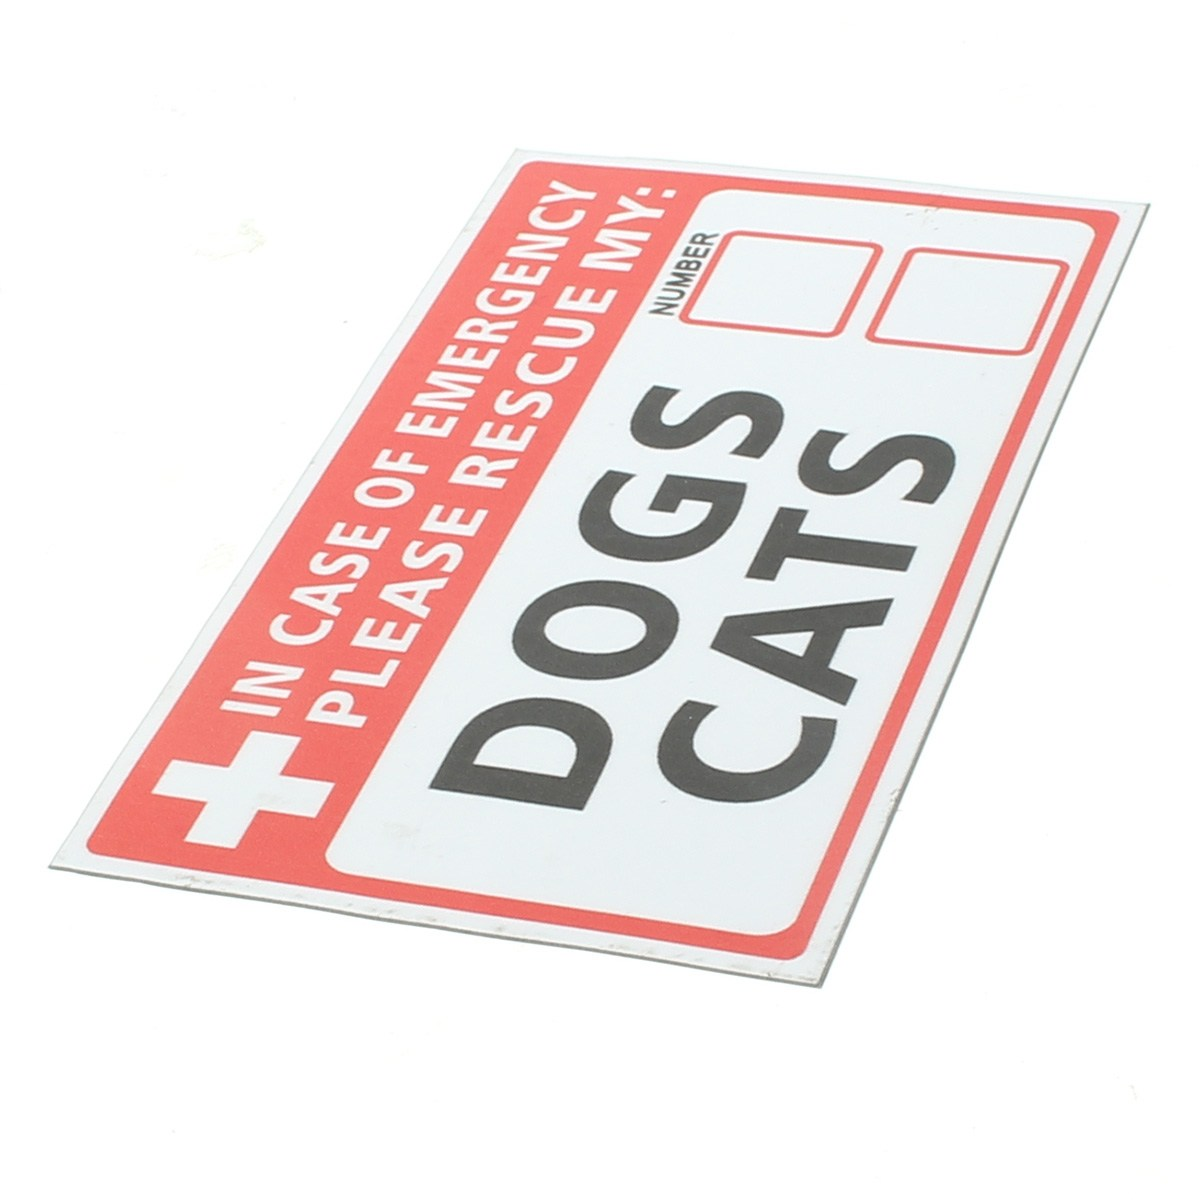 NEW Emergency Pet Rescue DOG CAT Vinyl Sticker Label Signs Safety Warning 74*125mm Security Safety